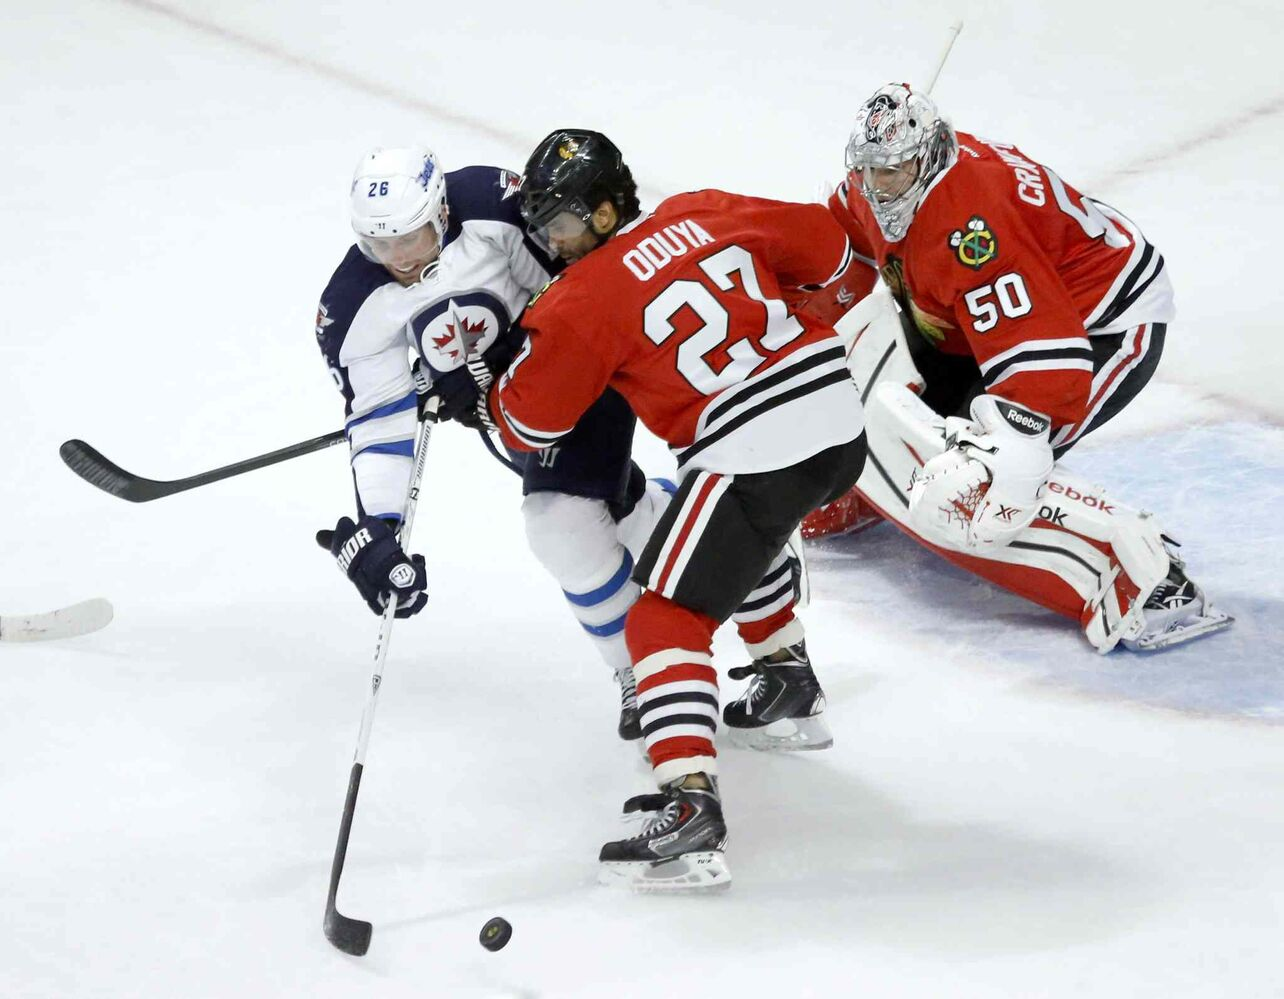 Blackhawks defenseman Johnny Oduya ties up Jets winger Blake Wheeler.